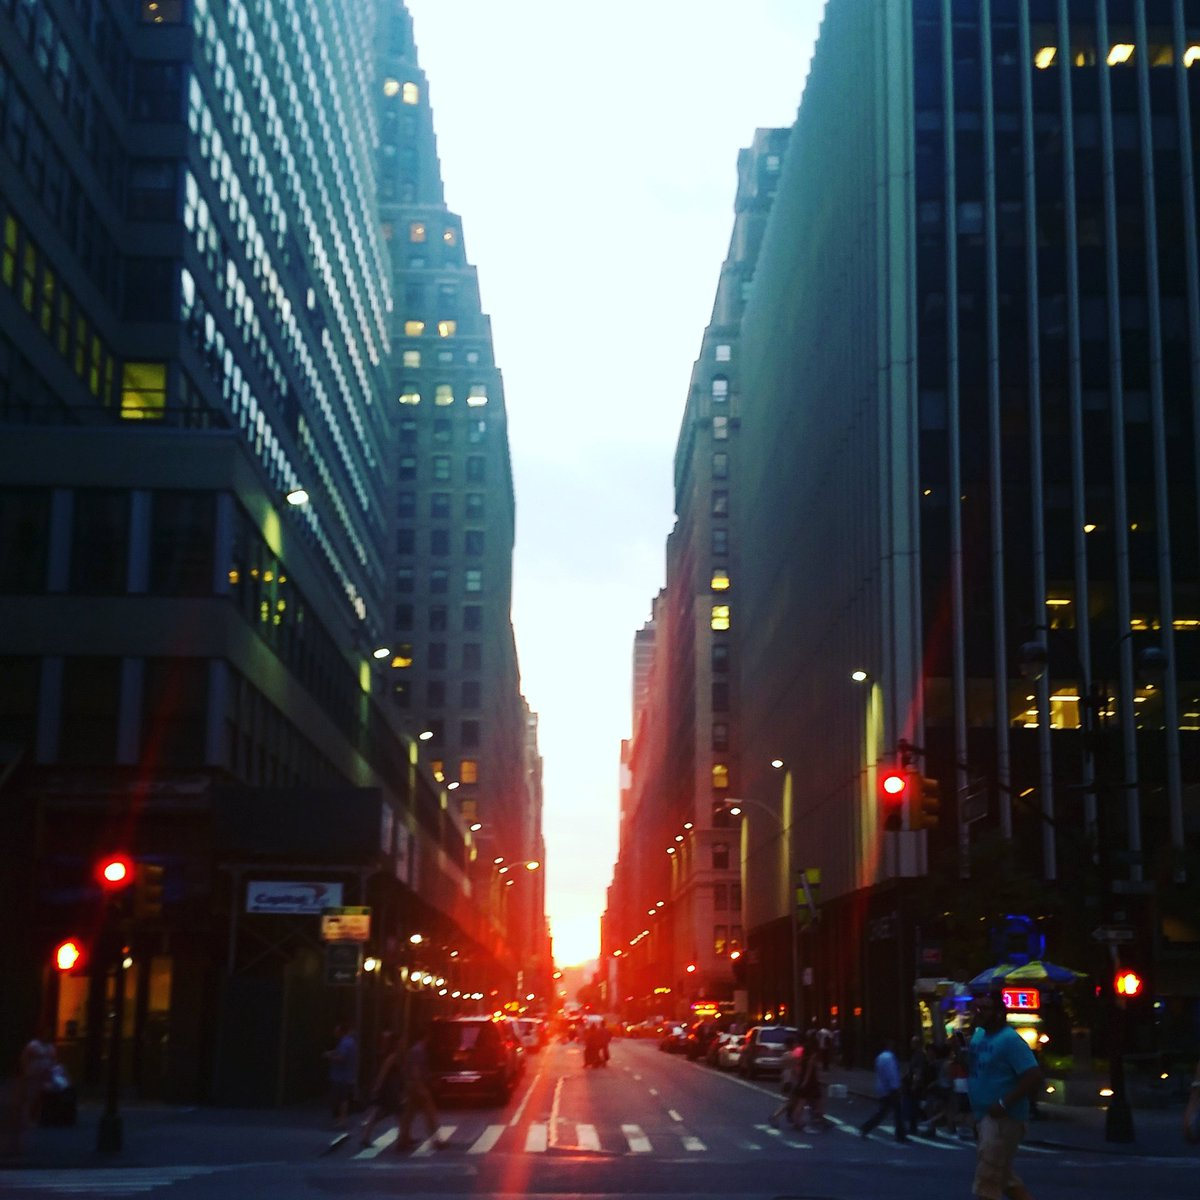 39th Street is not a bad spot to post up for #Manhattanhenge. Just wait until traffic has a red, please. https://t.co/eXSBAraubO